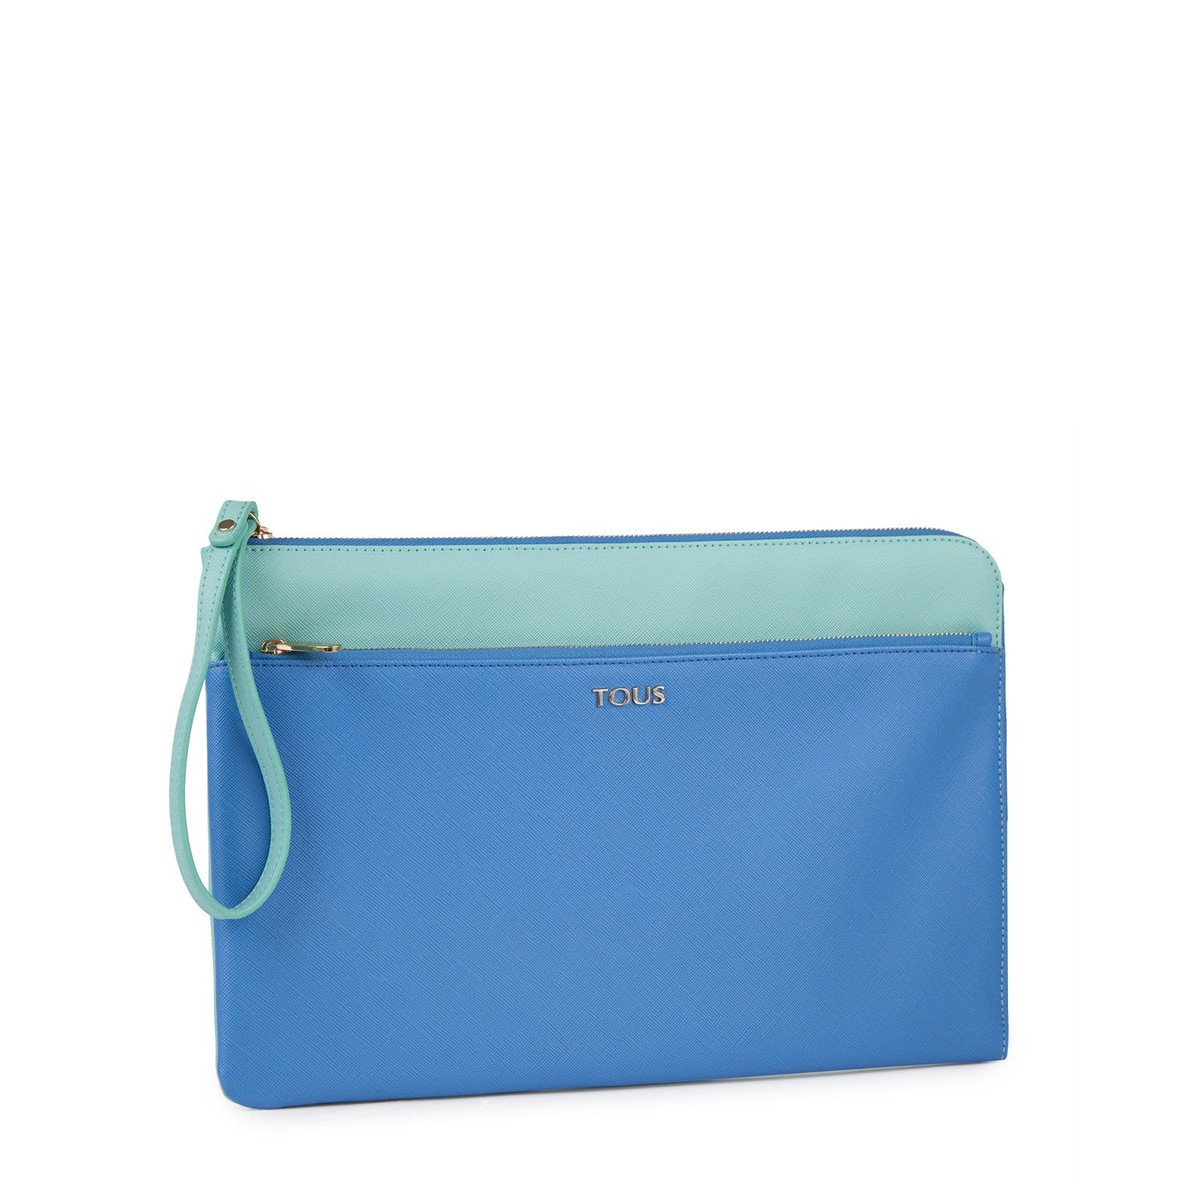 Clutch-Tasche Essence in Blau